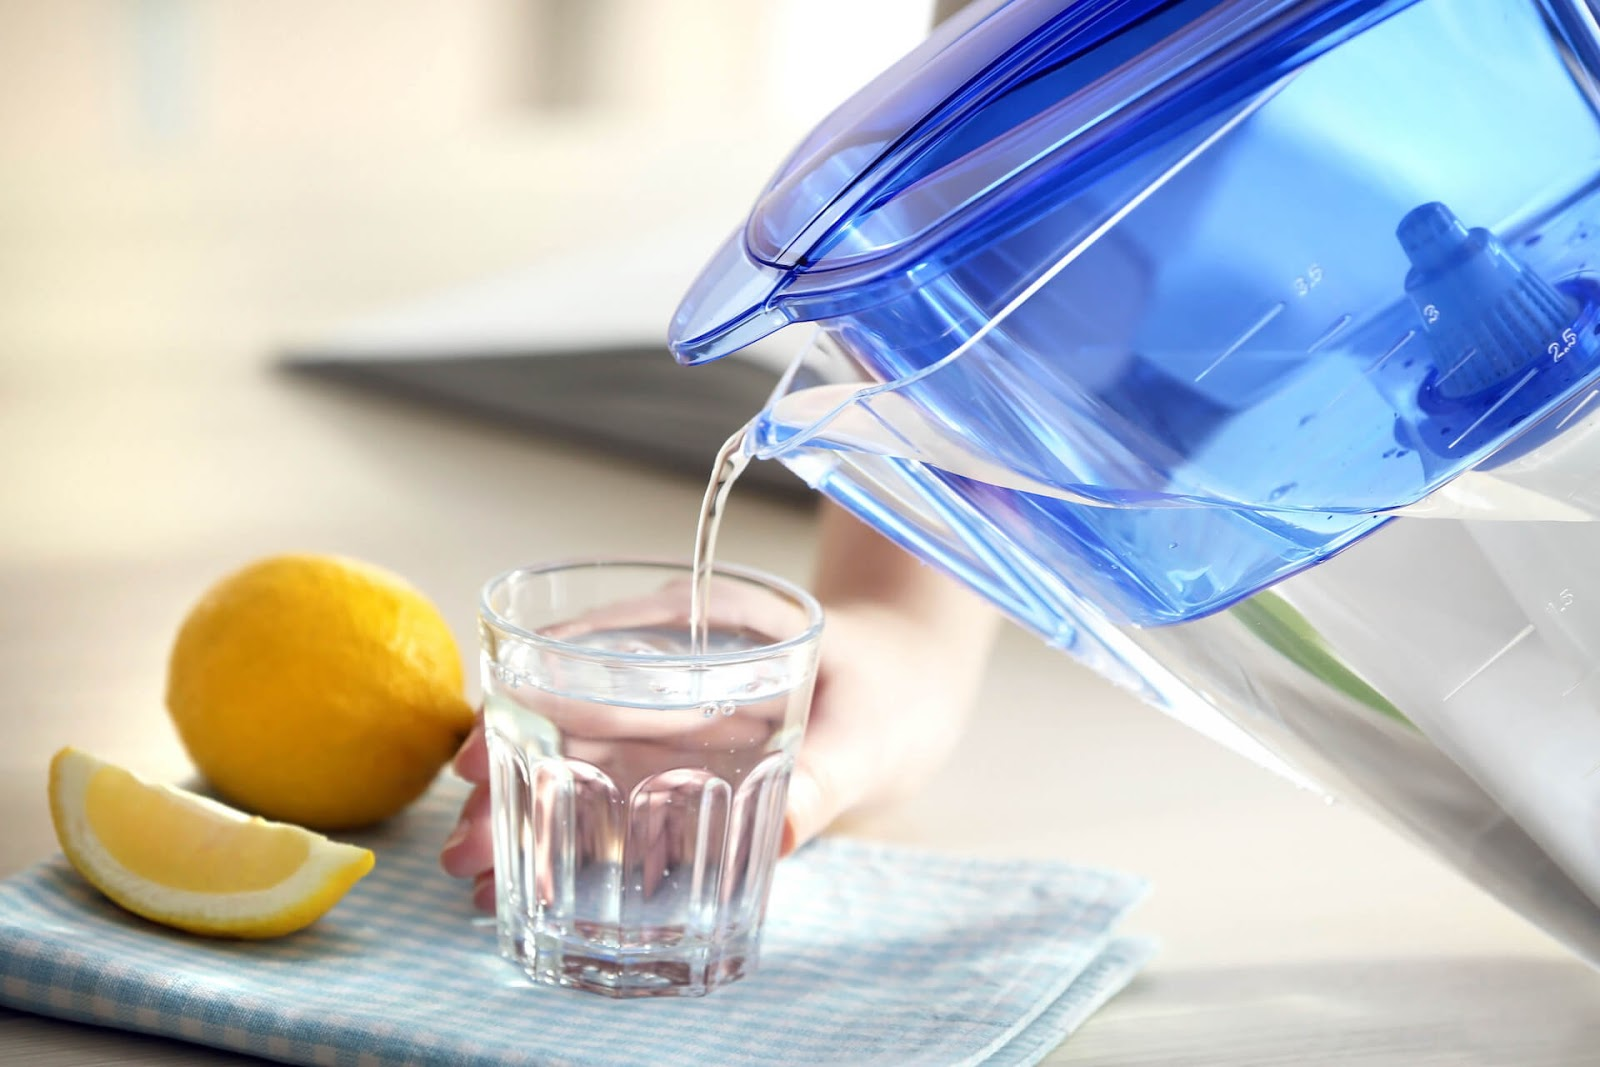 Someone pouring water from a pitcher into a cup with some lingering lemons nearby